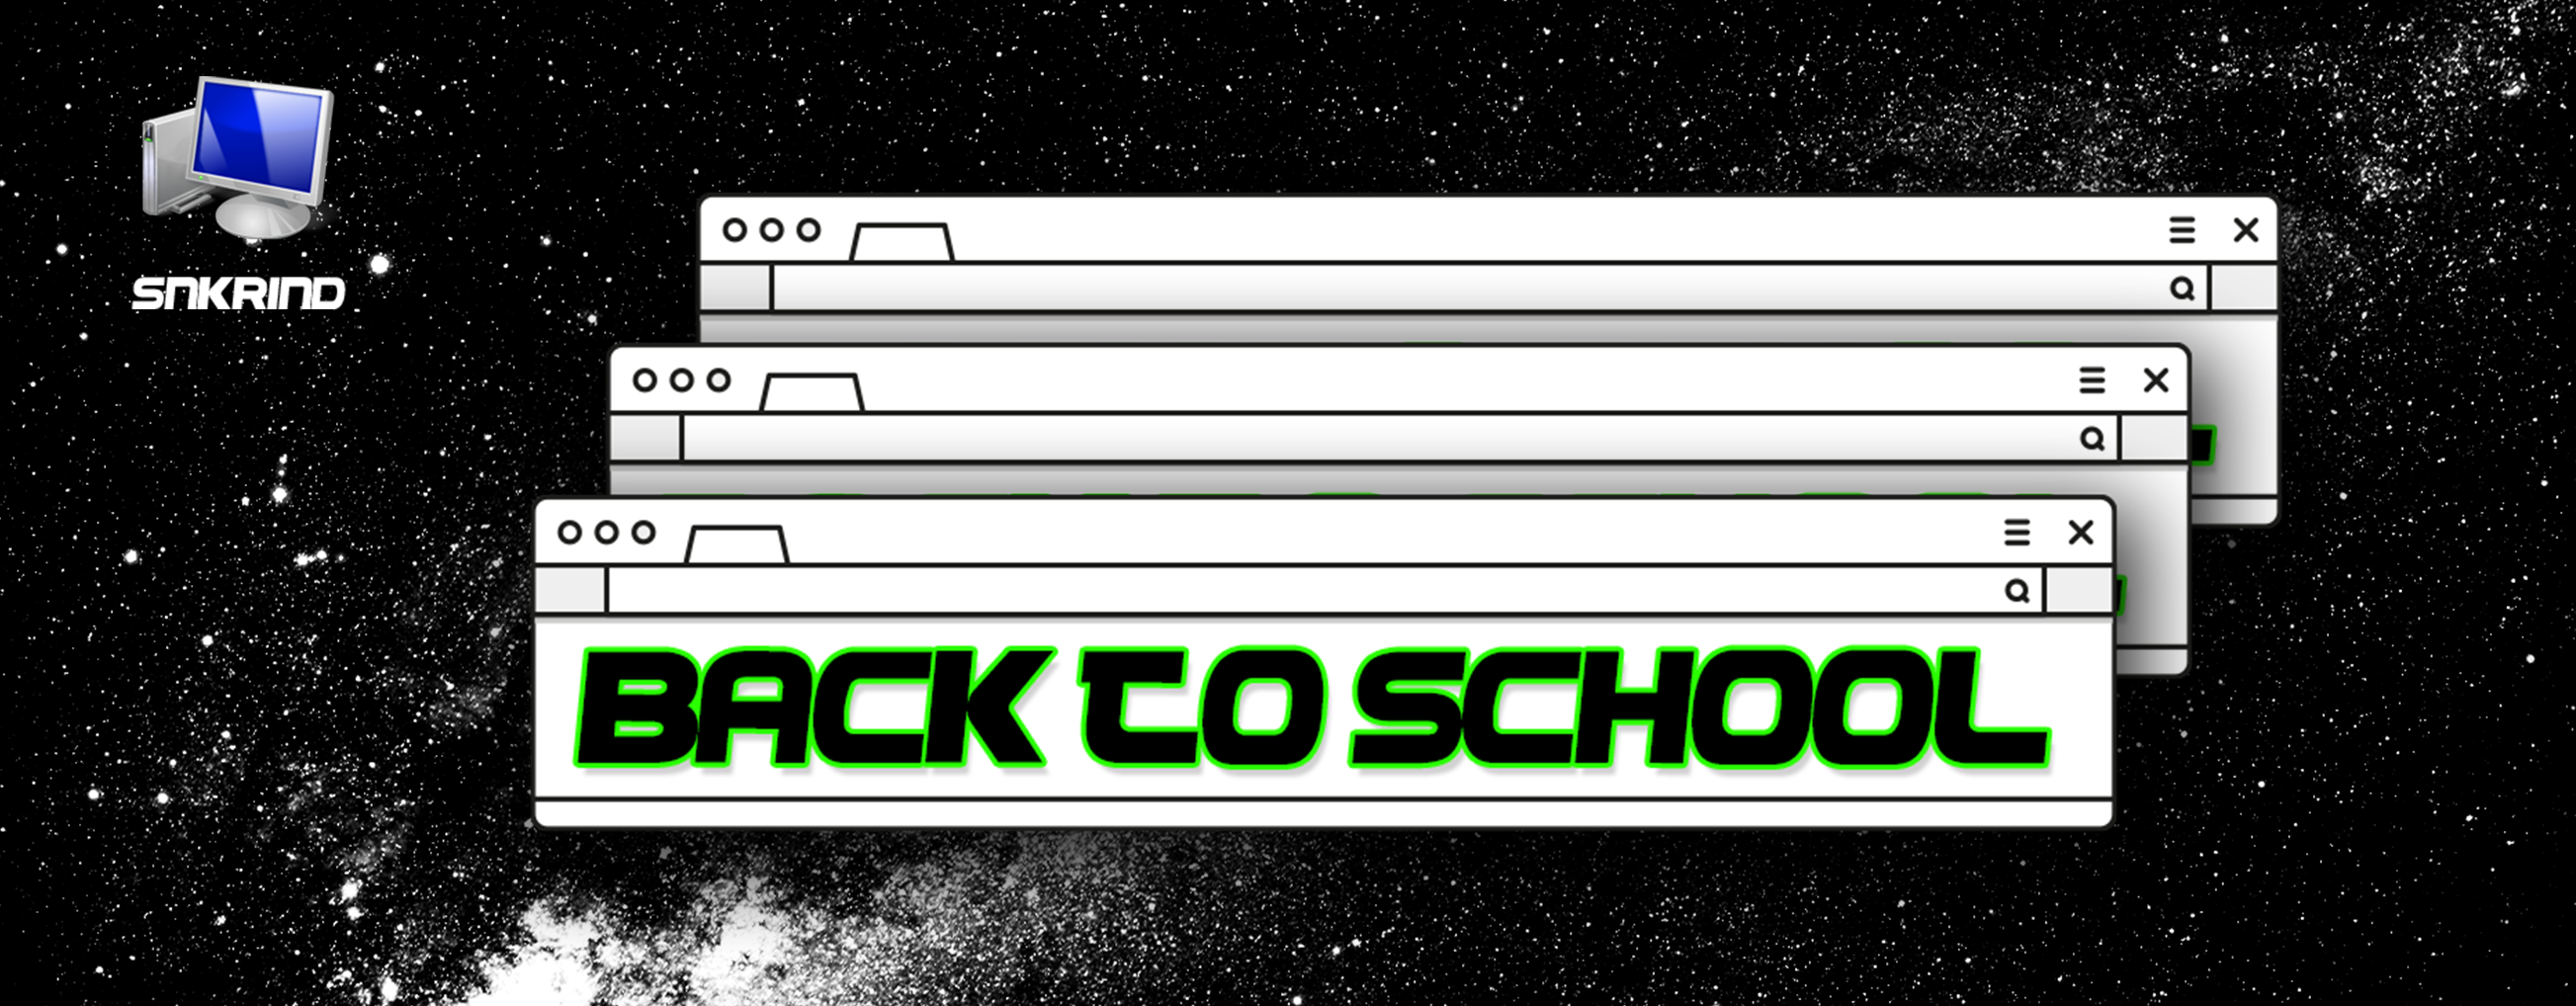 BACK TO SCHOOL UP TO 70% OFF